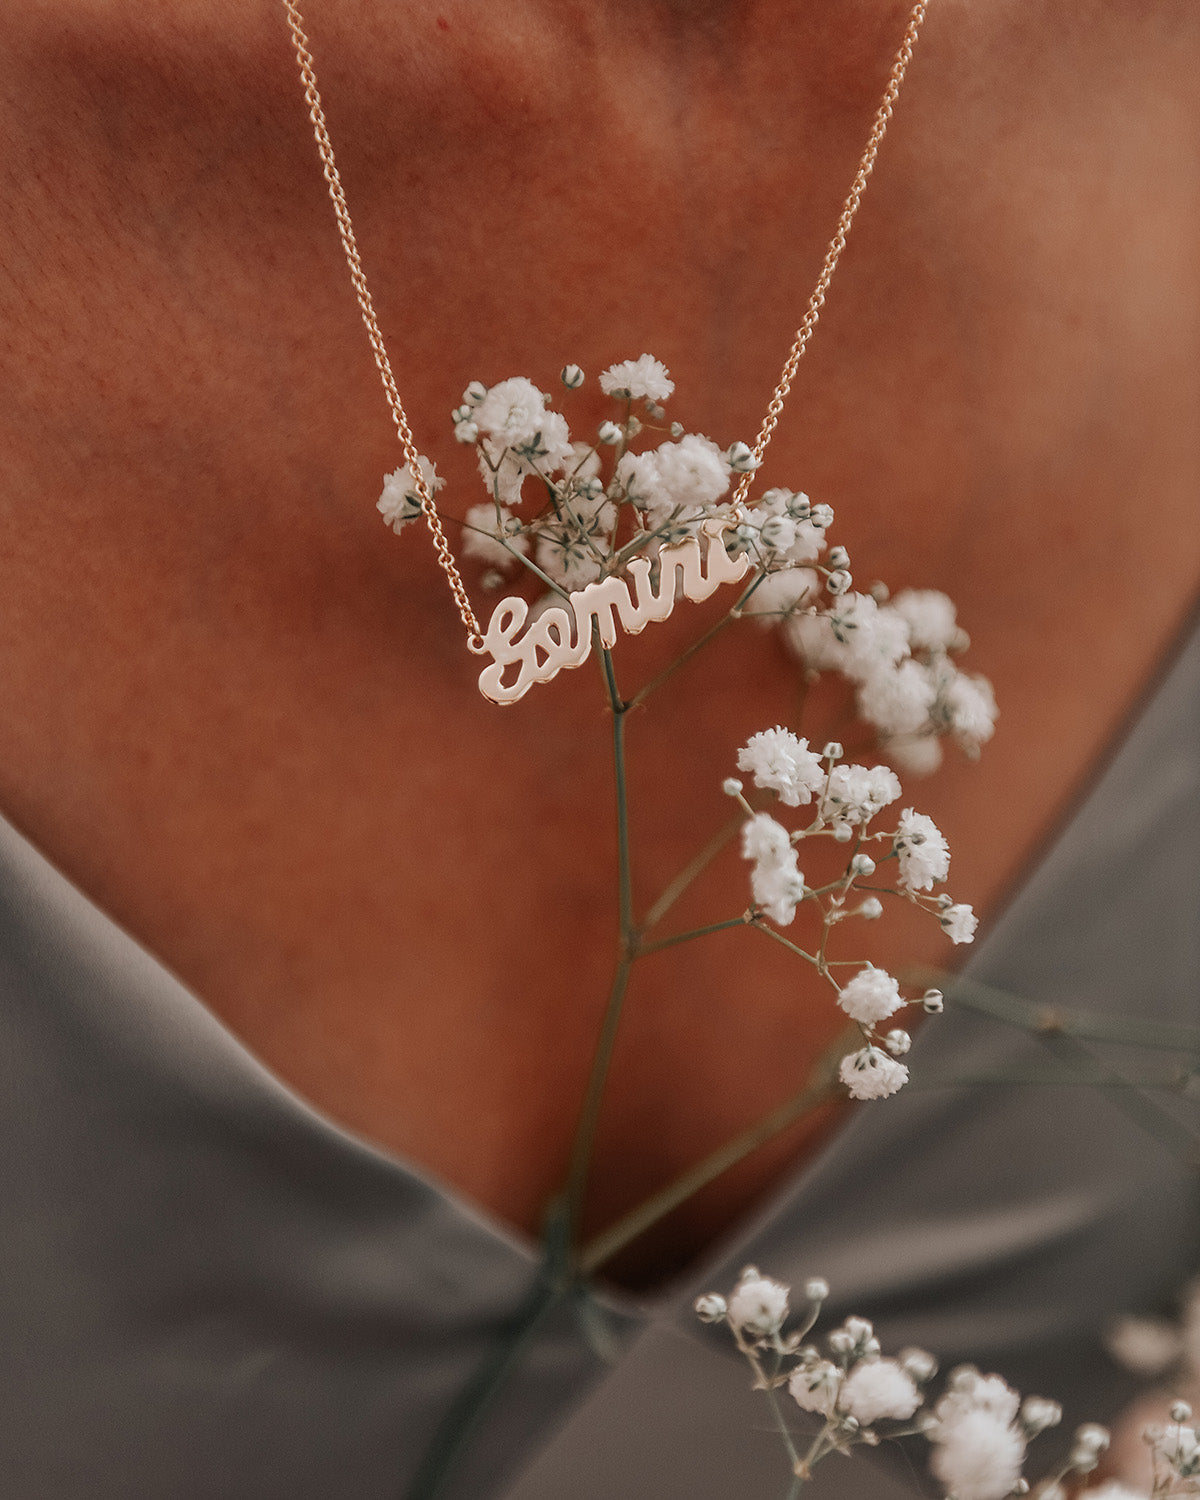 Image of Gemini Zodiac Nameplate Necklace